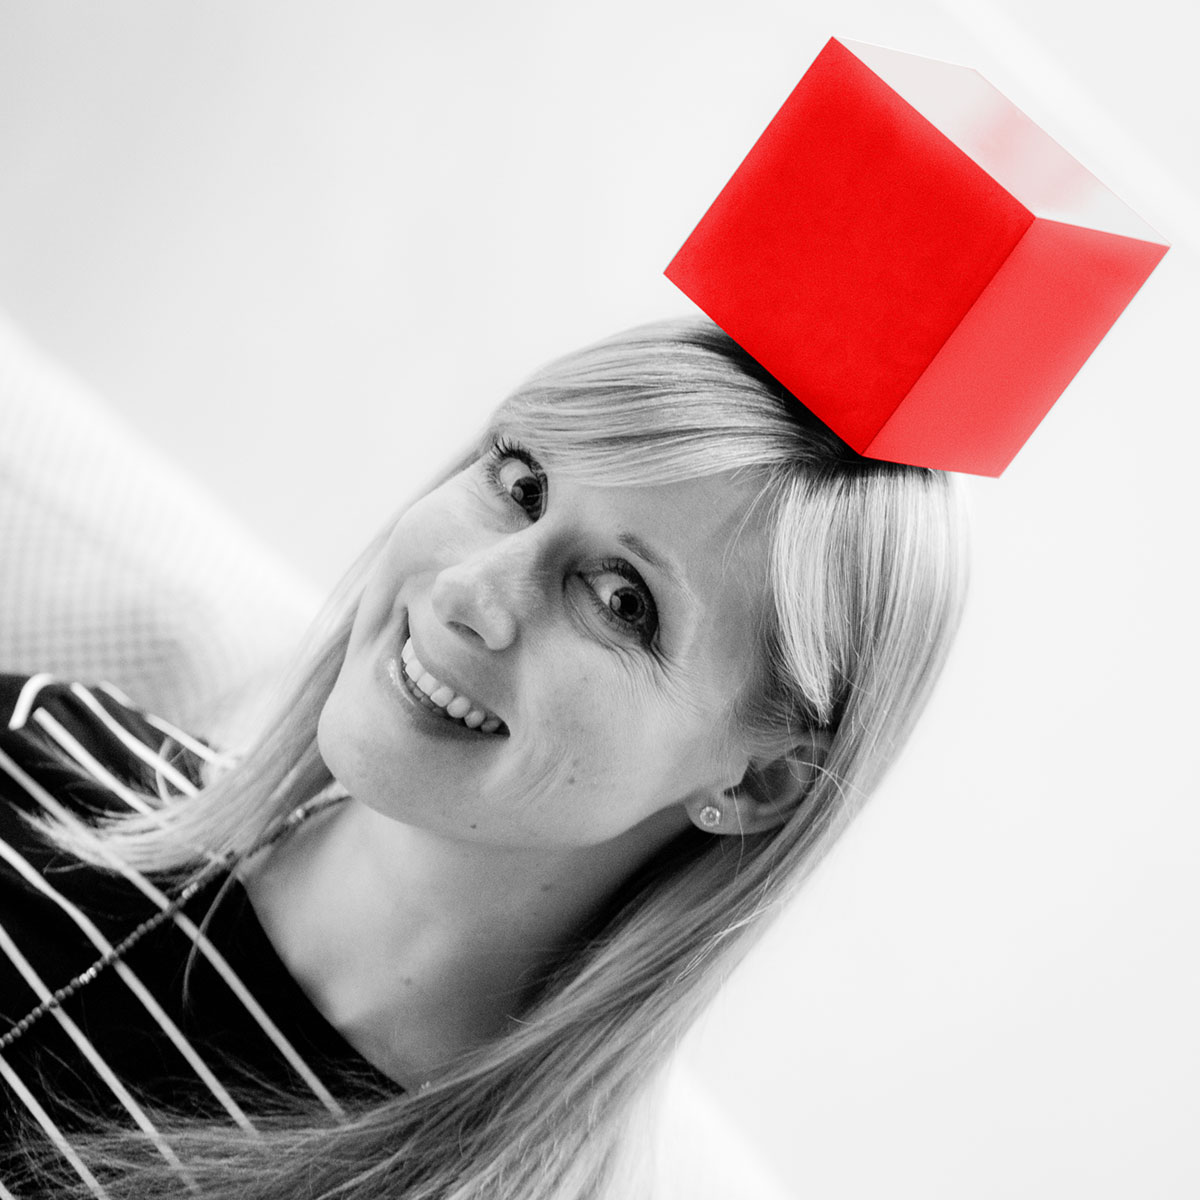 Caity Mclaughlin Lischick in black and white, with a bright red cube on her head